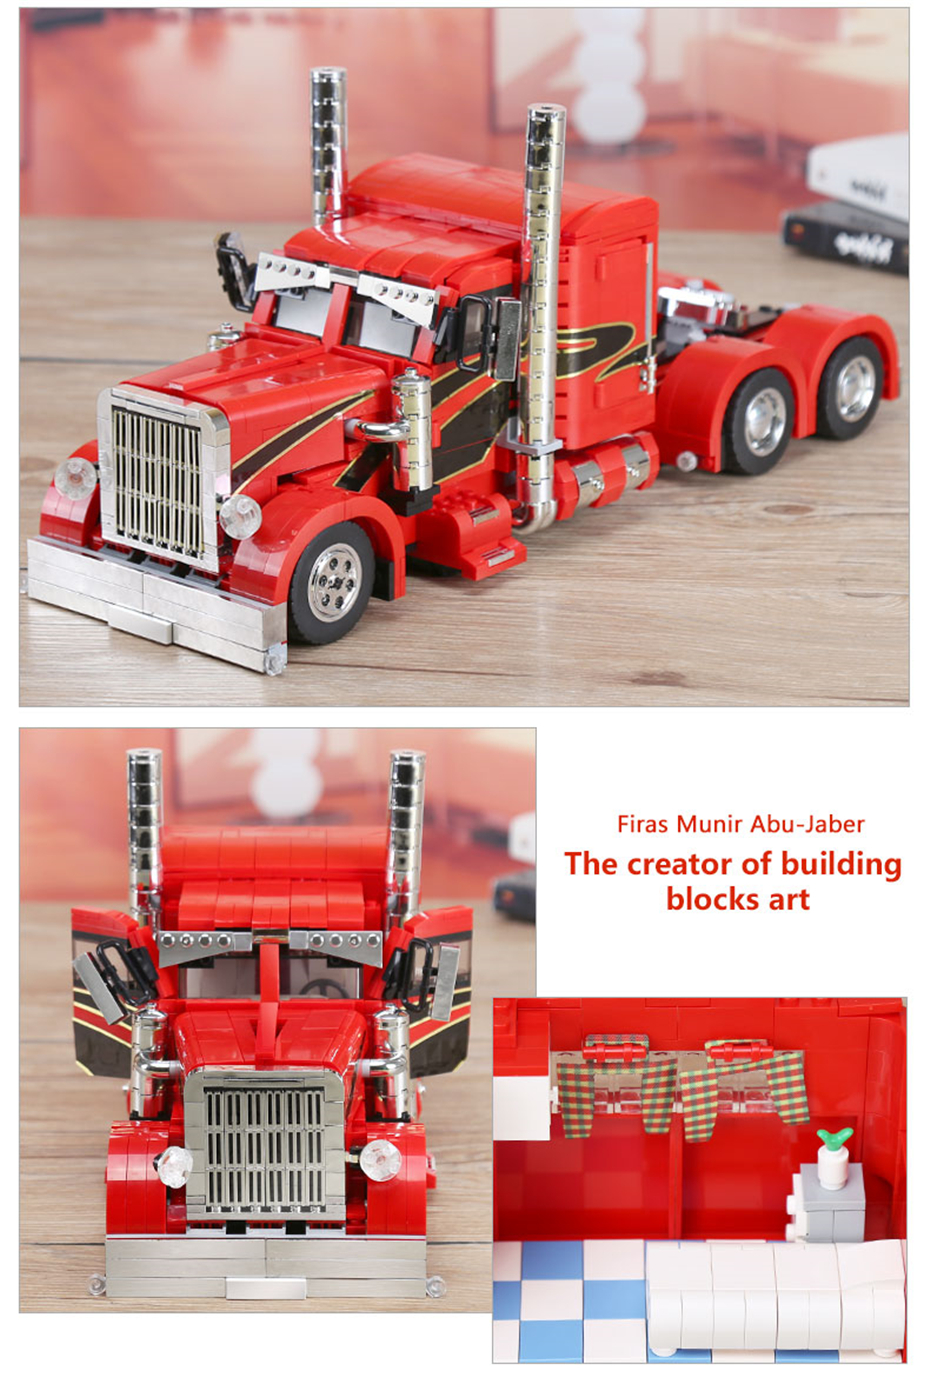 XINGBAO XB-03012 Red Monster Building Block 35